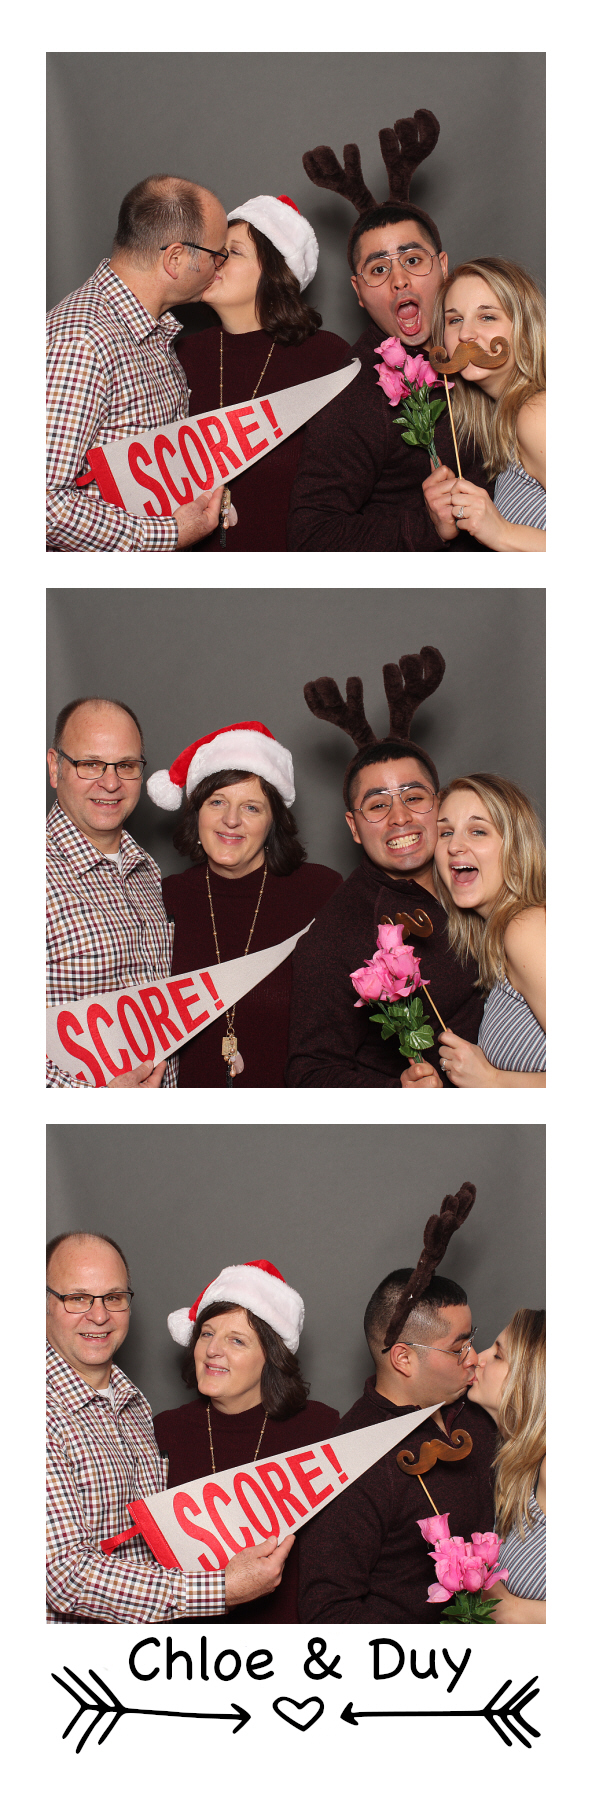 Boxy Booth Photo Booth Co. Virginia Wedding photo booth staunton charlottesville harrisonburg lexington virginia